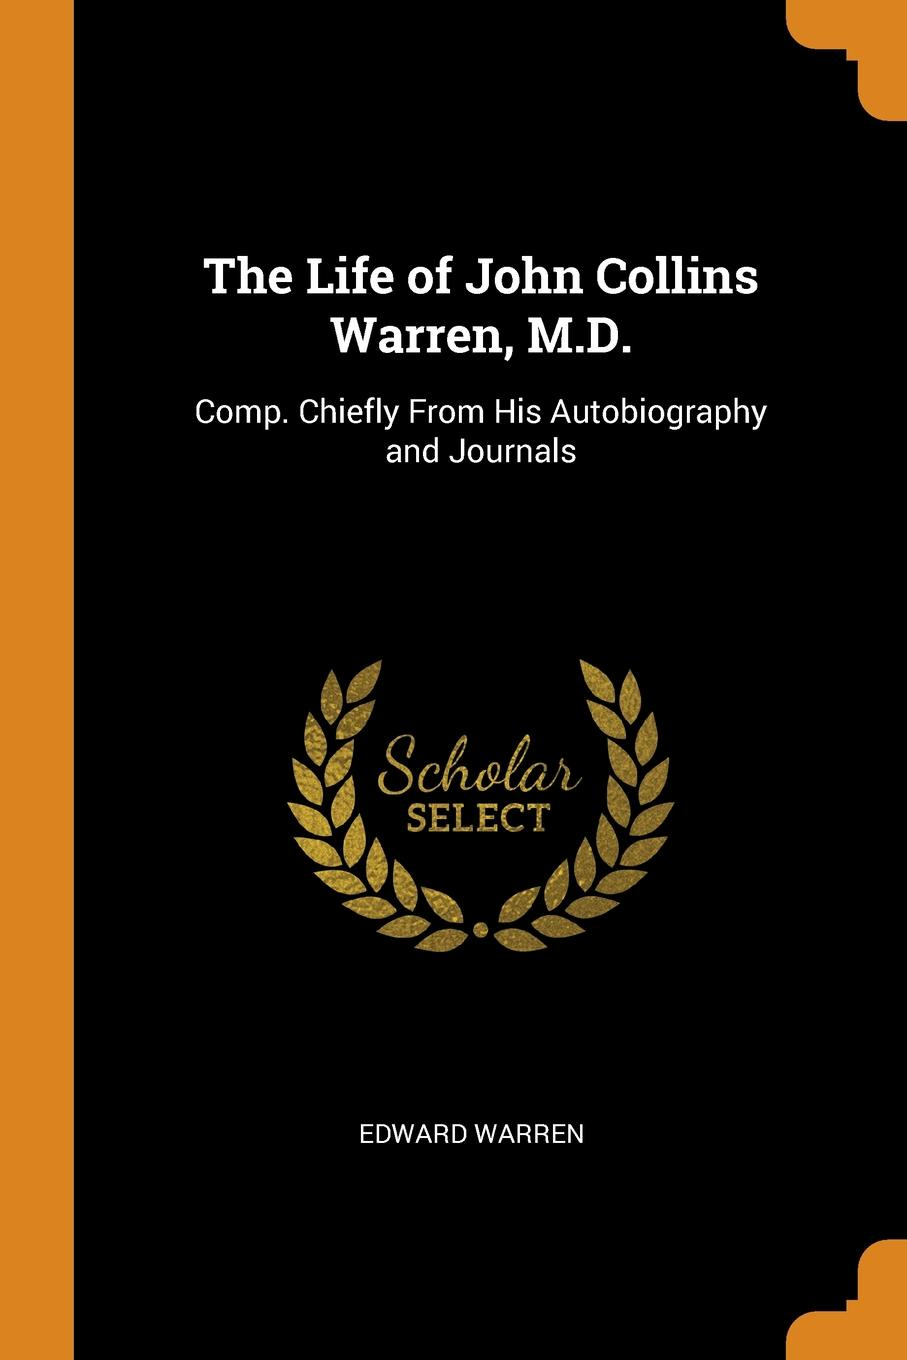 Edward Warren The Life of John Collins Warren, M.D. Comp. Chiefly From His Autobiography and Journals